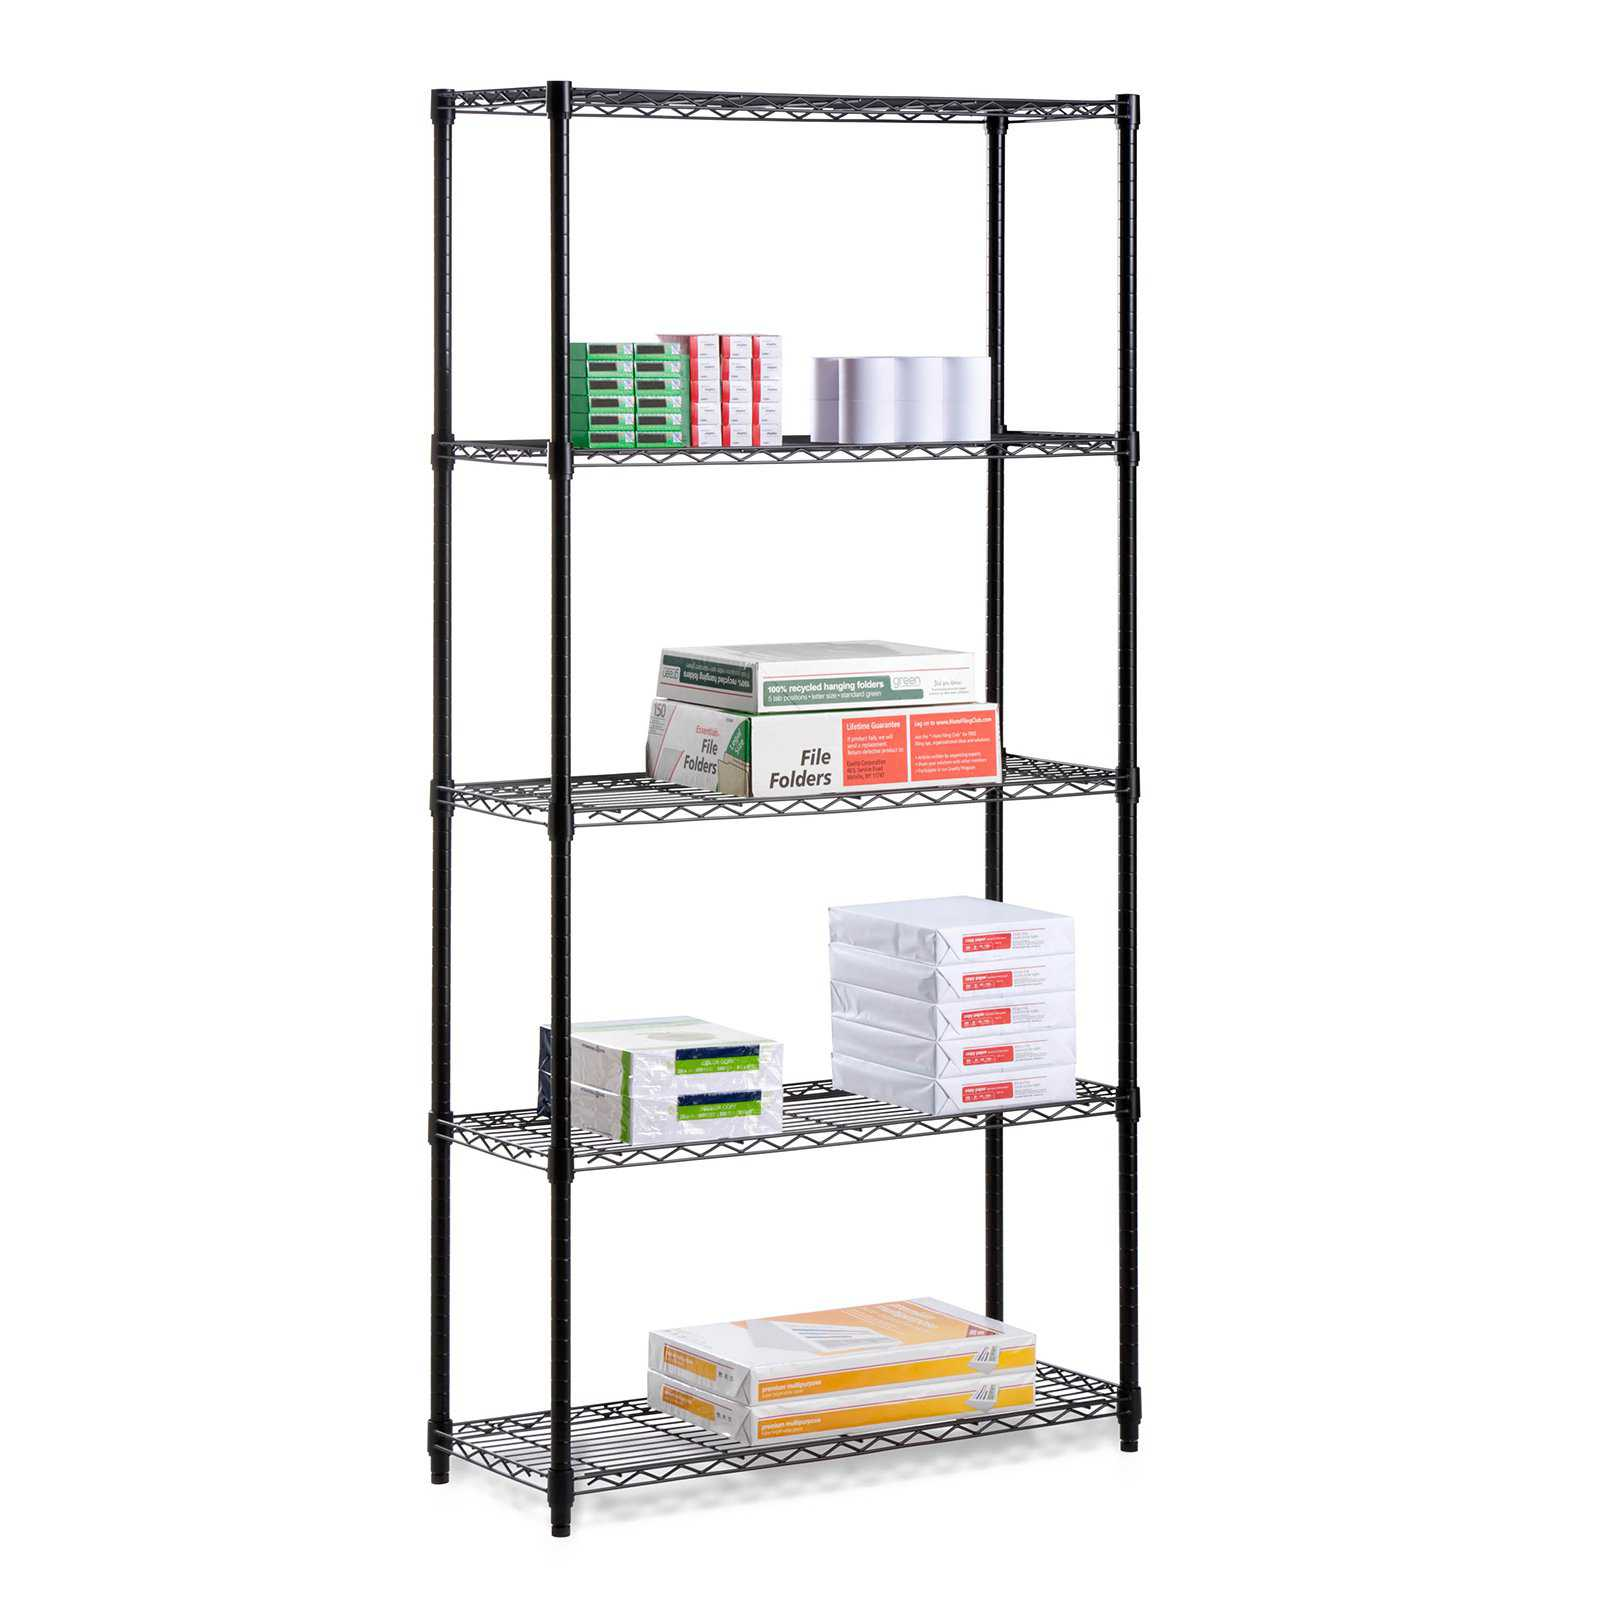 Honey Can Do 5-Tier Storage Shelves 18x36x72', 350 Lbs, Black